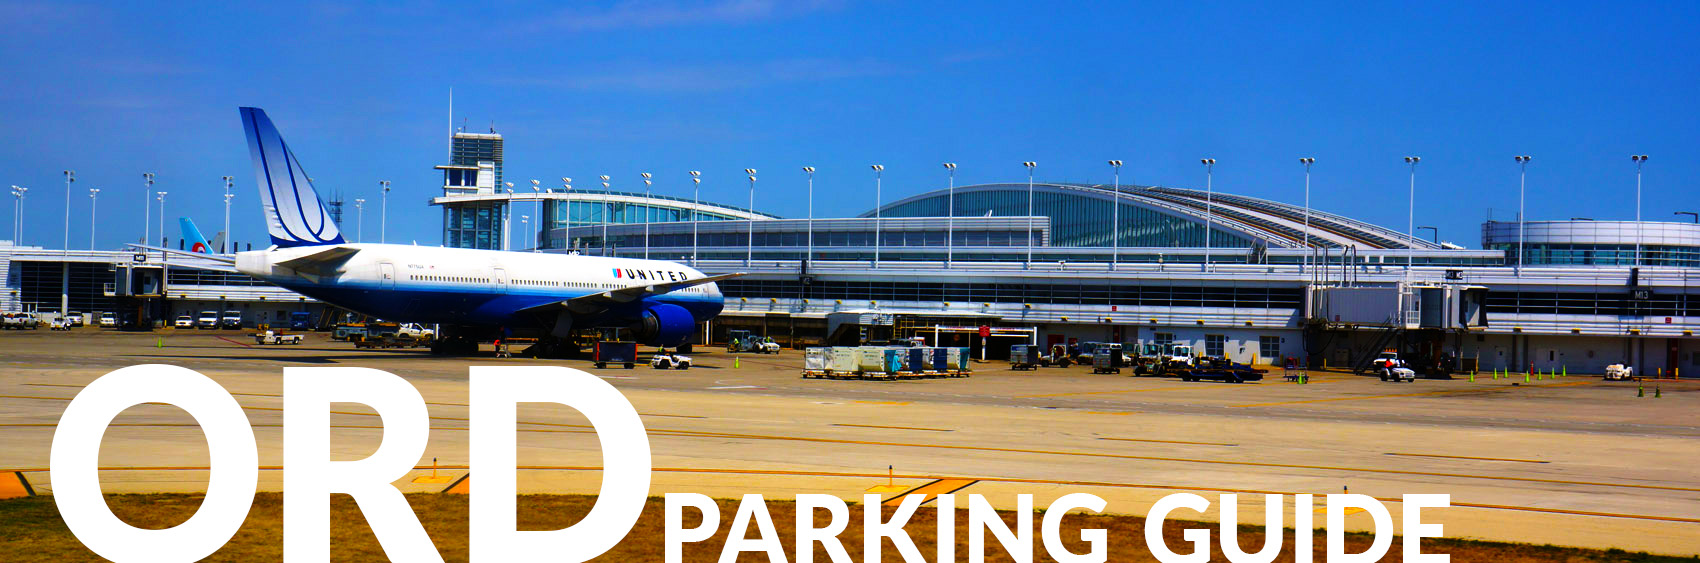 Location Parking Paris 16 Ord Airport Parking Guide Find Cheap Airport Parking Near O Hare